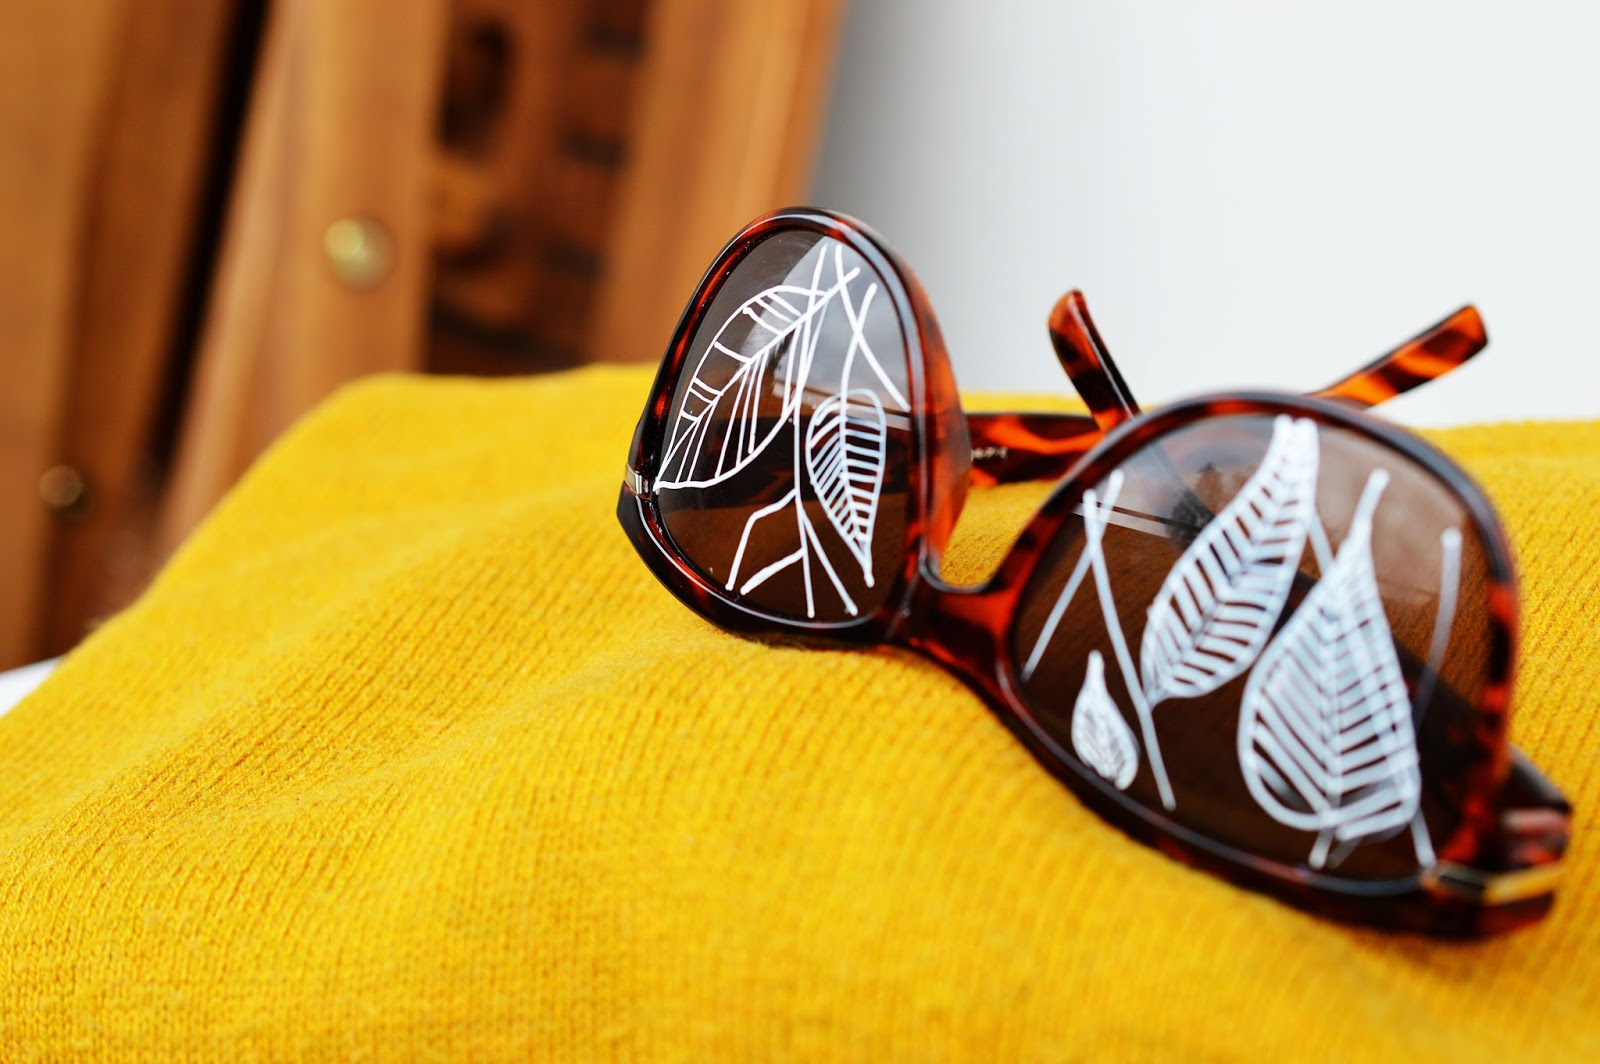 DIY Painted Sunglasses | Motte's Blog